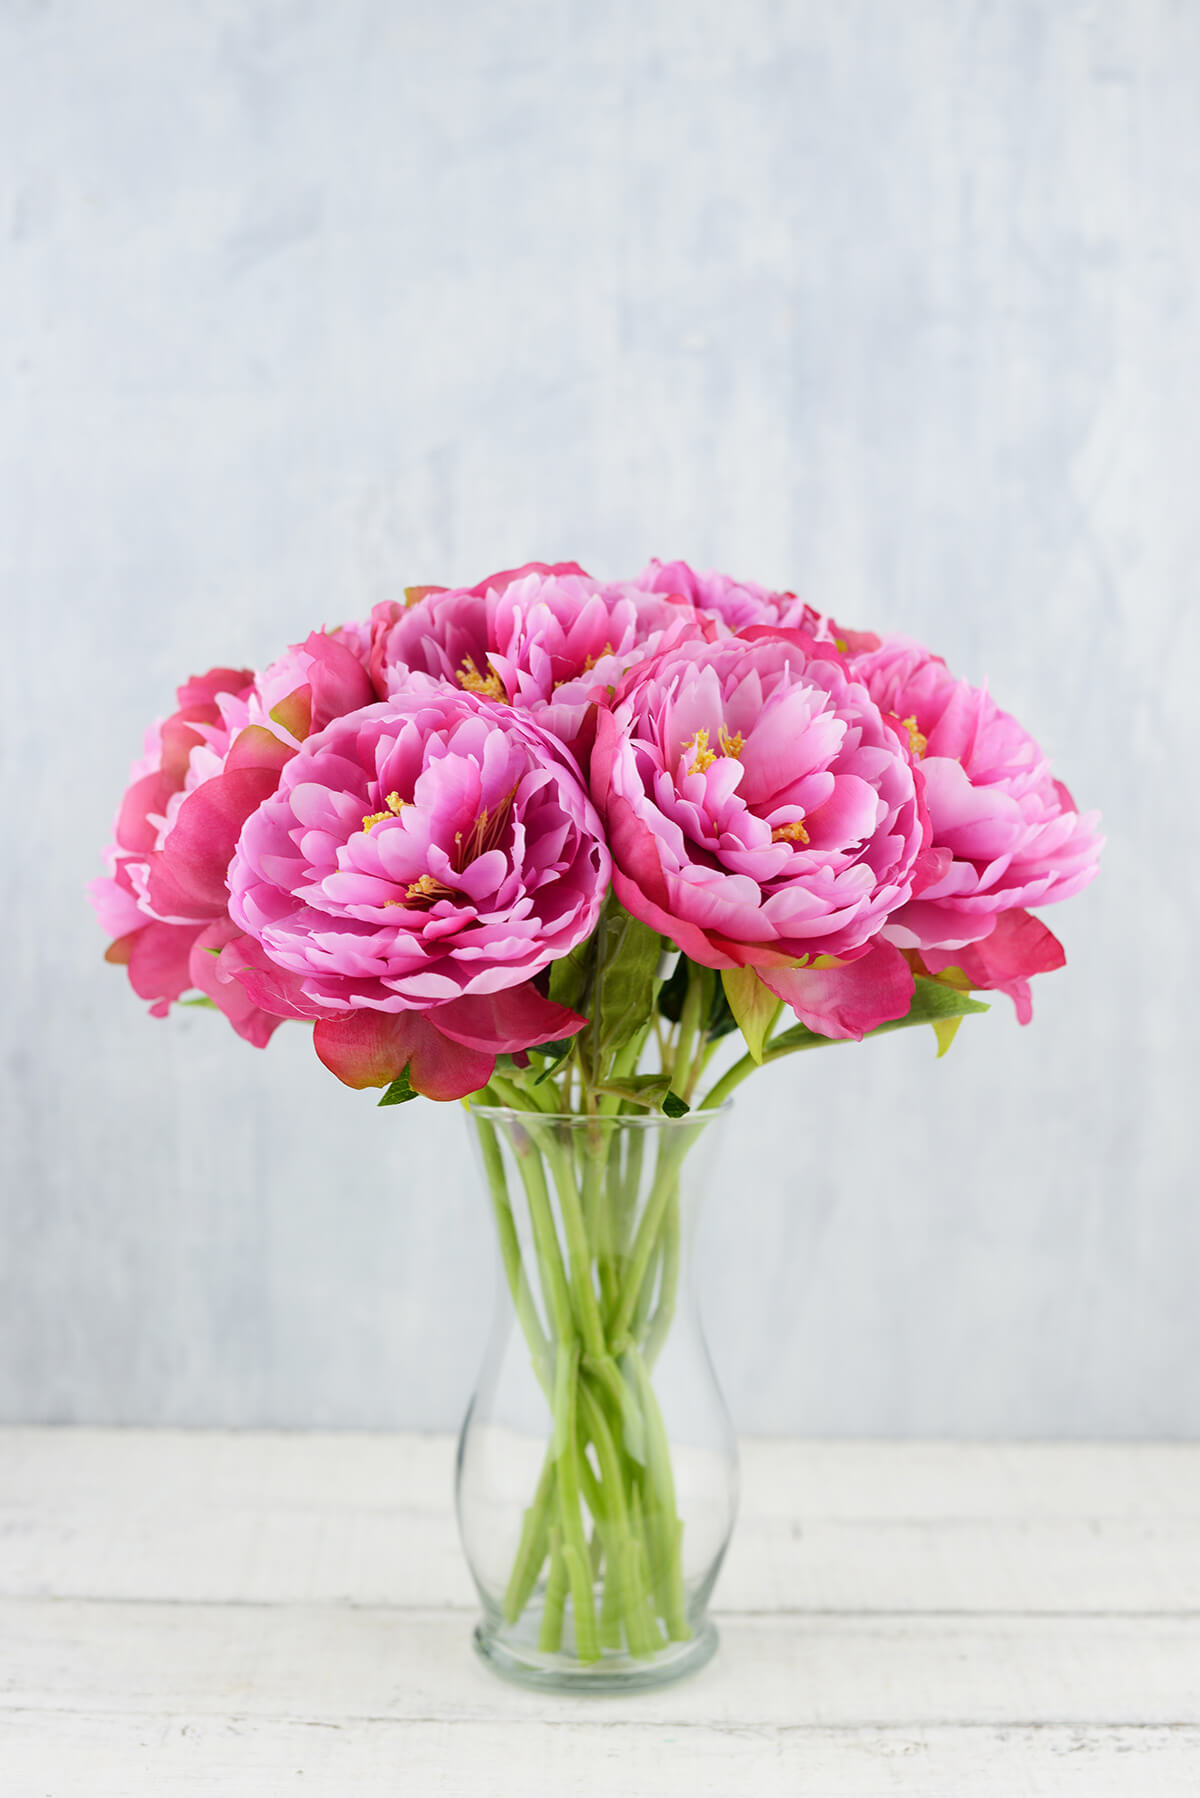 Perfect pink peony flowers 13 12 perfect pink peony flowers 13 izmirmasajfo Images